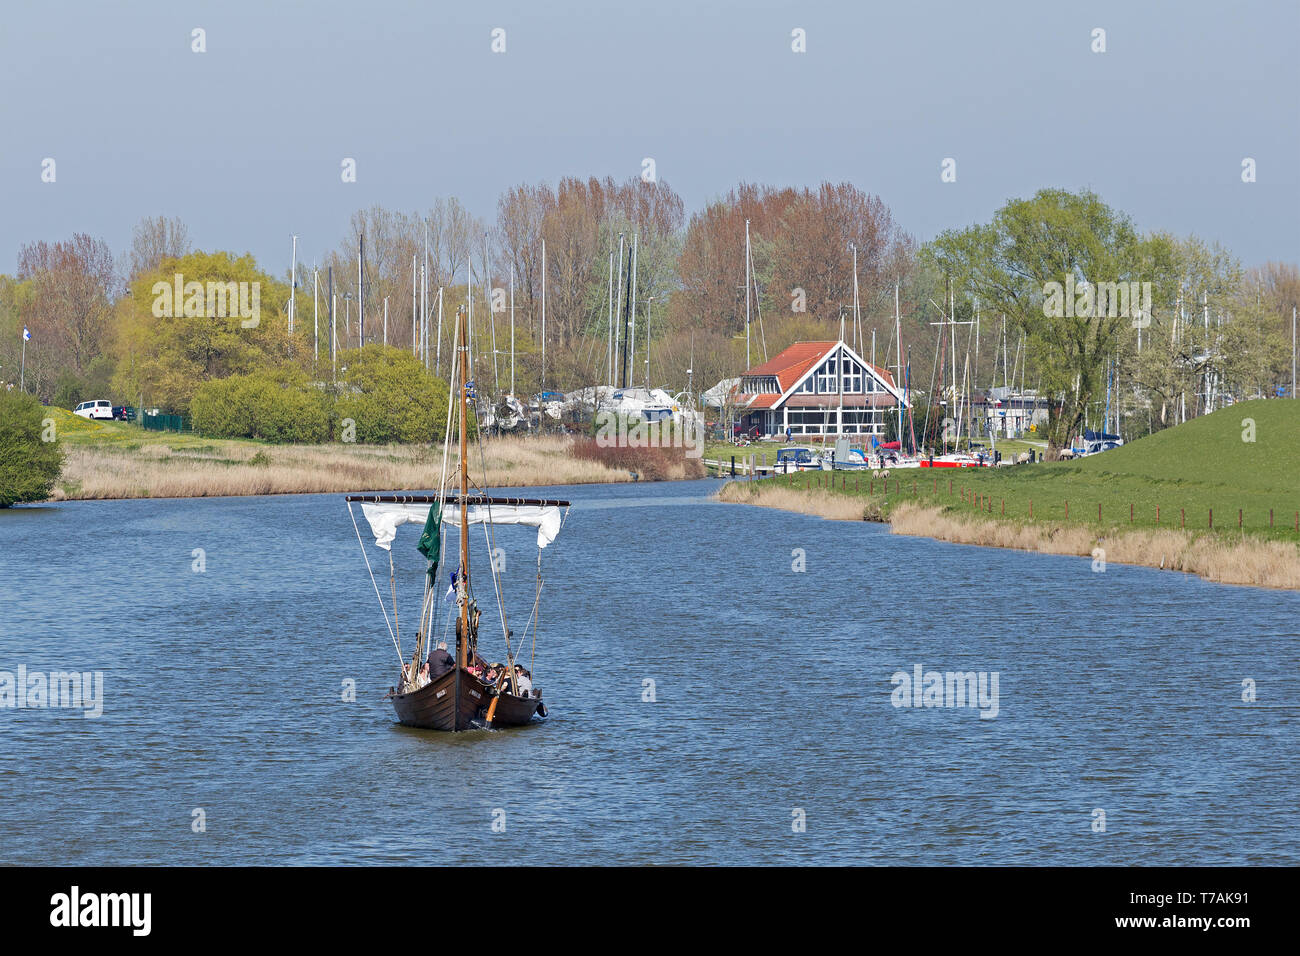 traditional sailing boat leaving the harbour, Hooksiel, Wangerland, Lower Saxony, Germany - Stock Image